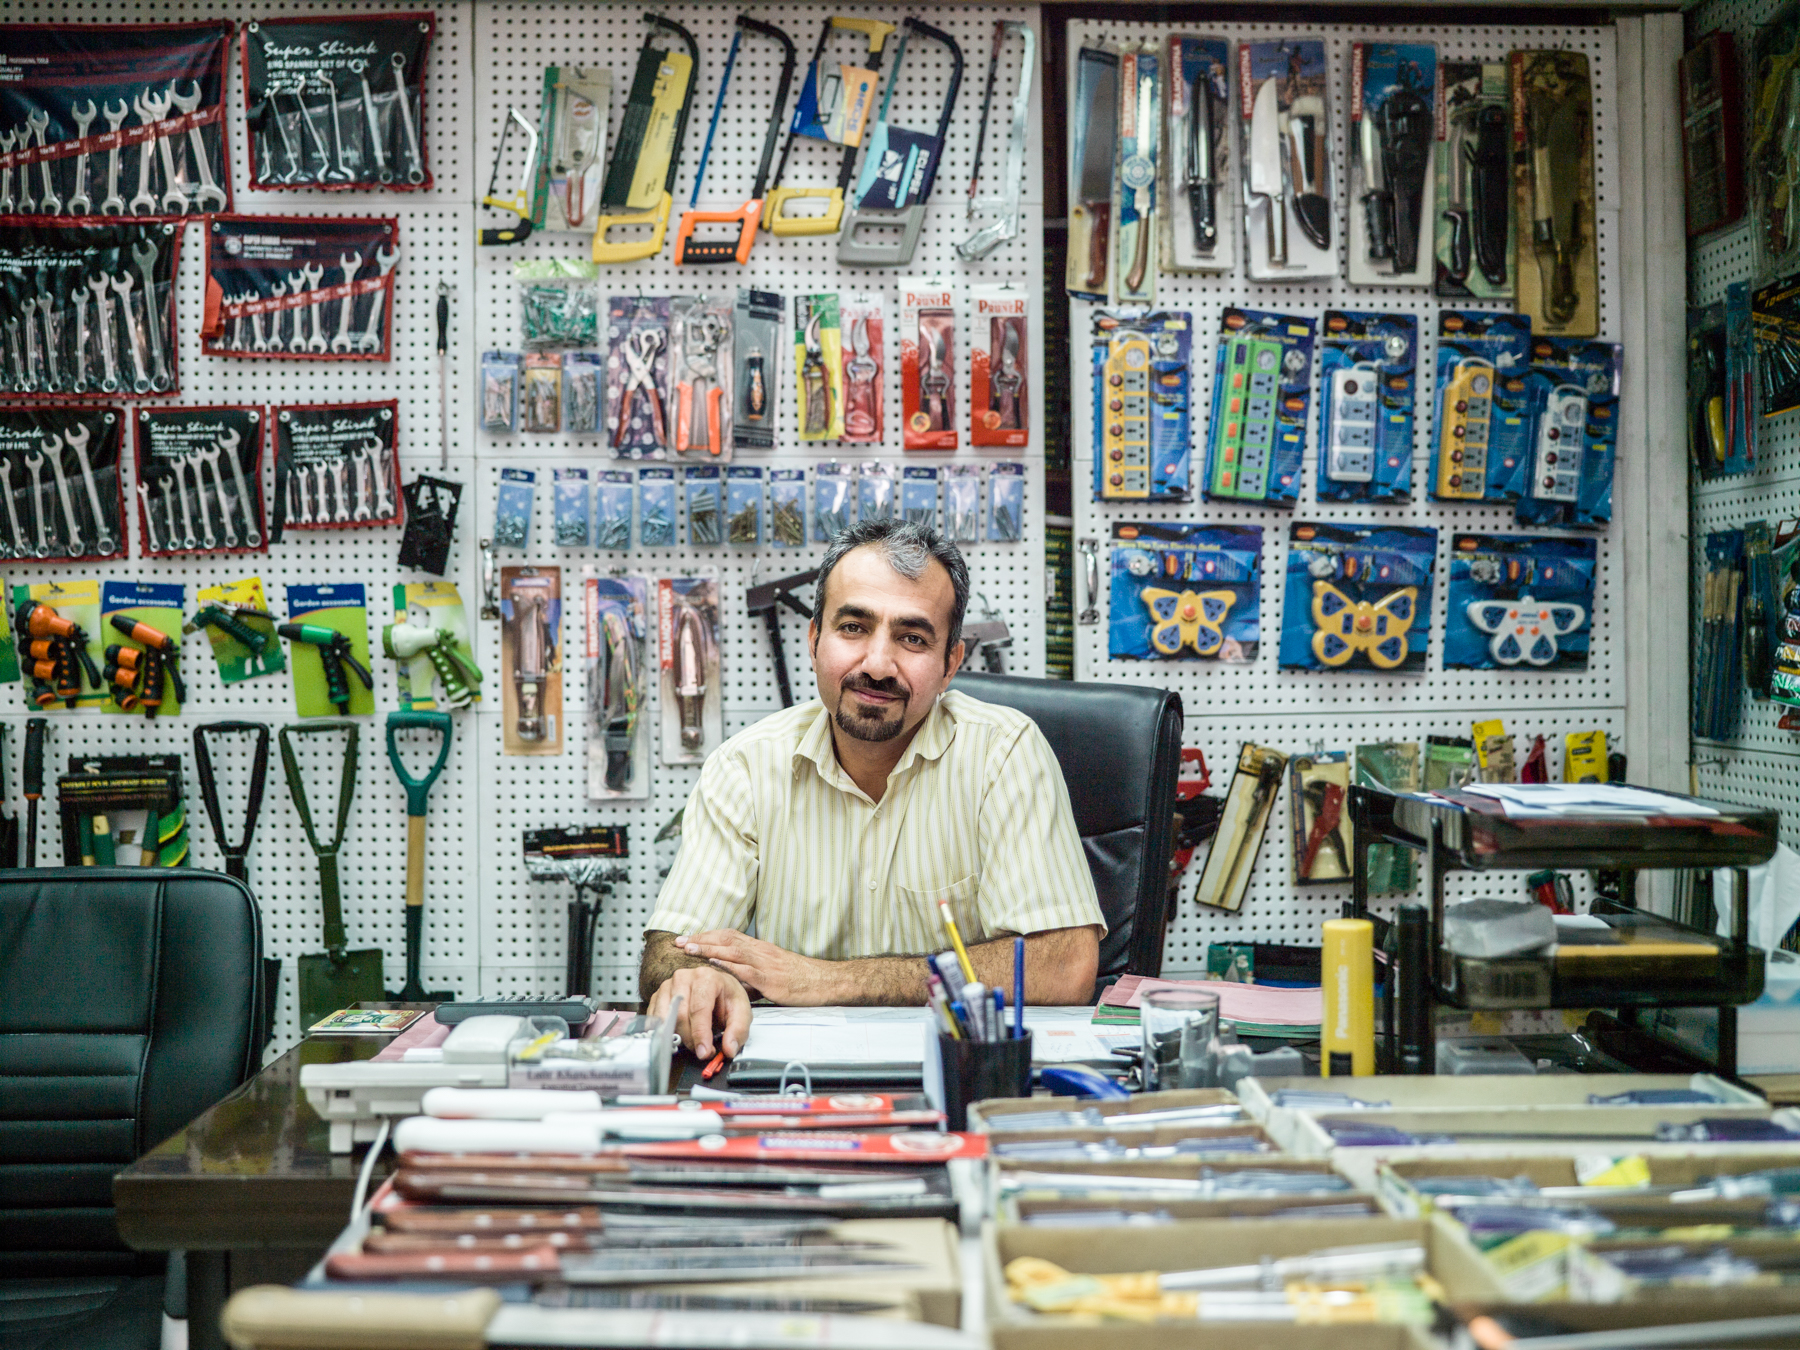 Shopkeeper in Dubai